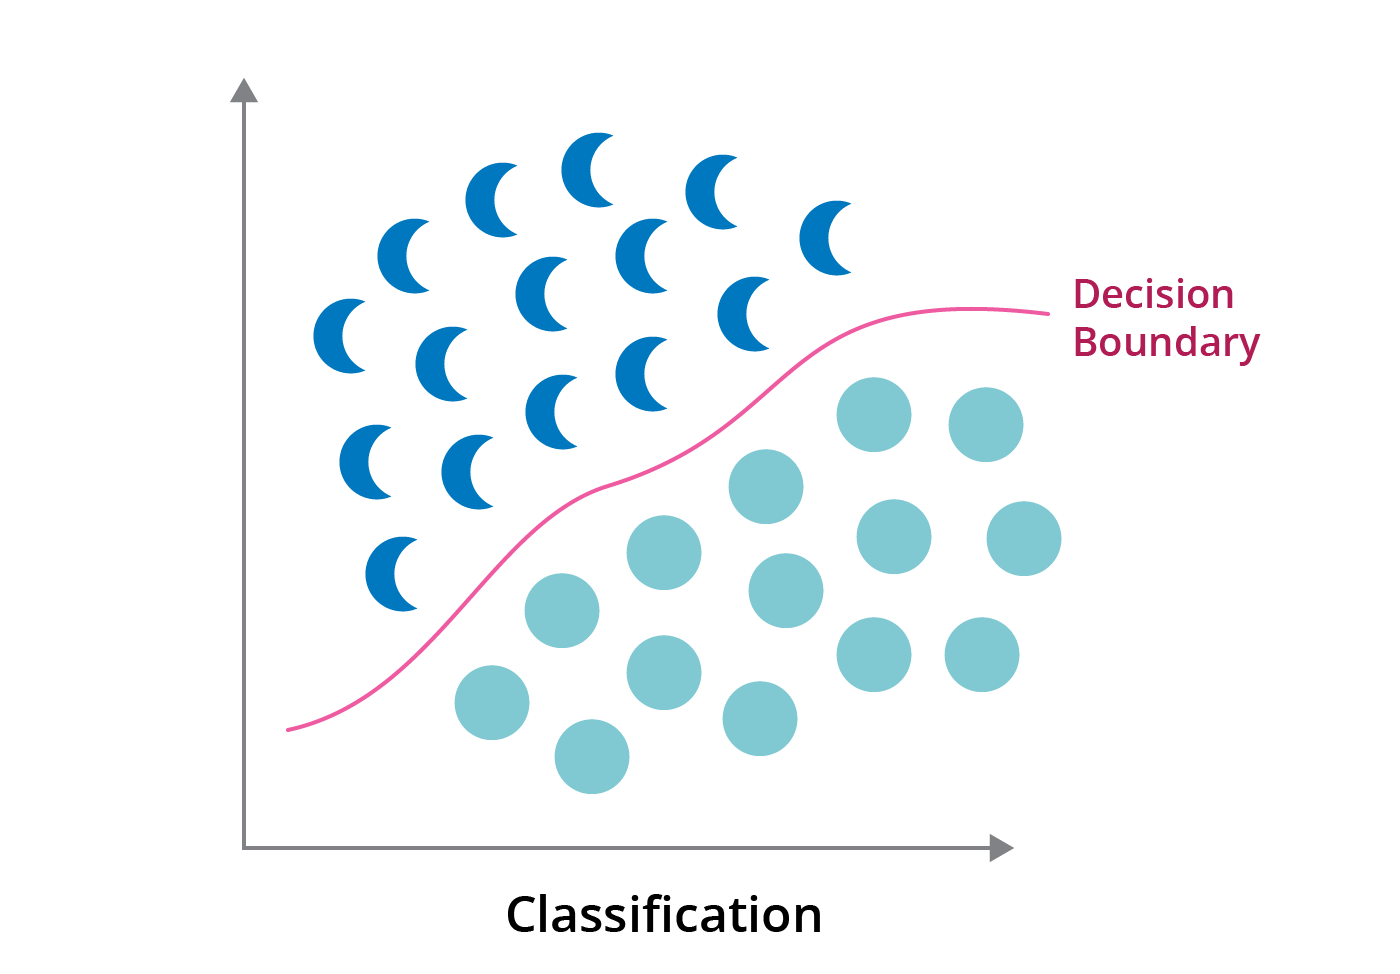 classifier models